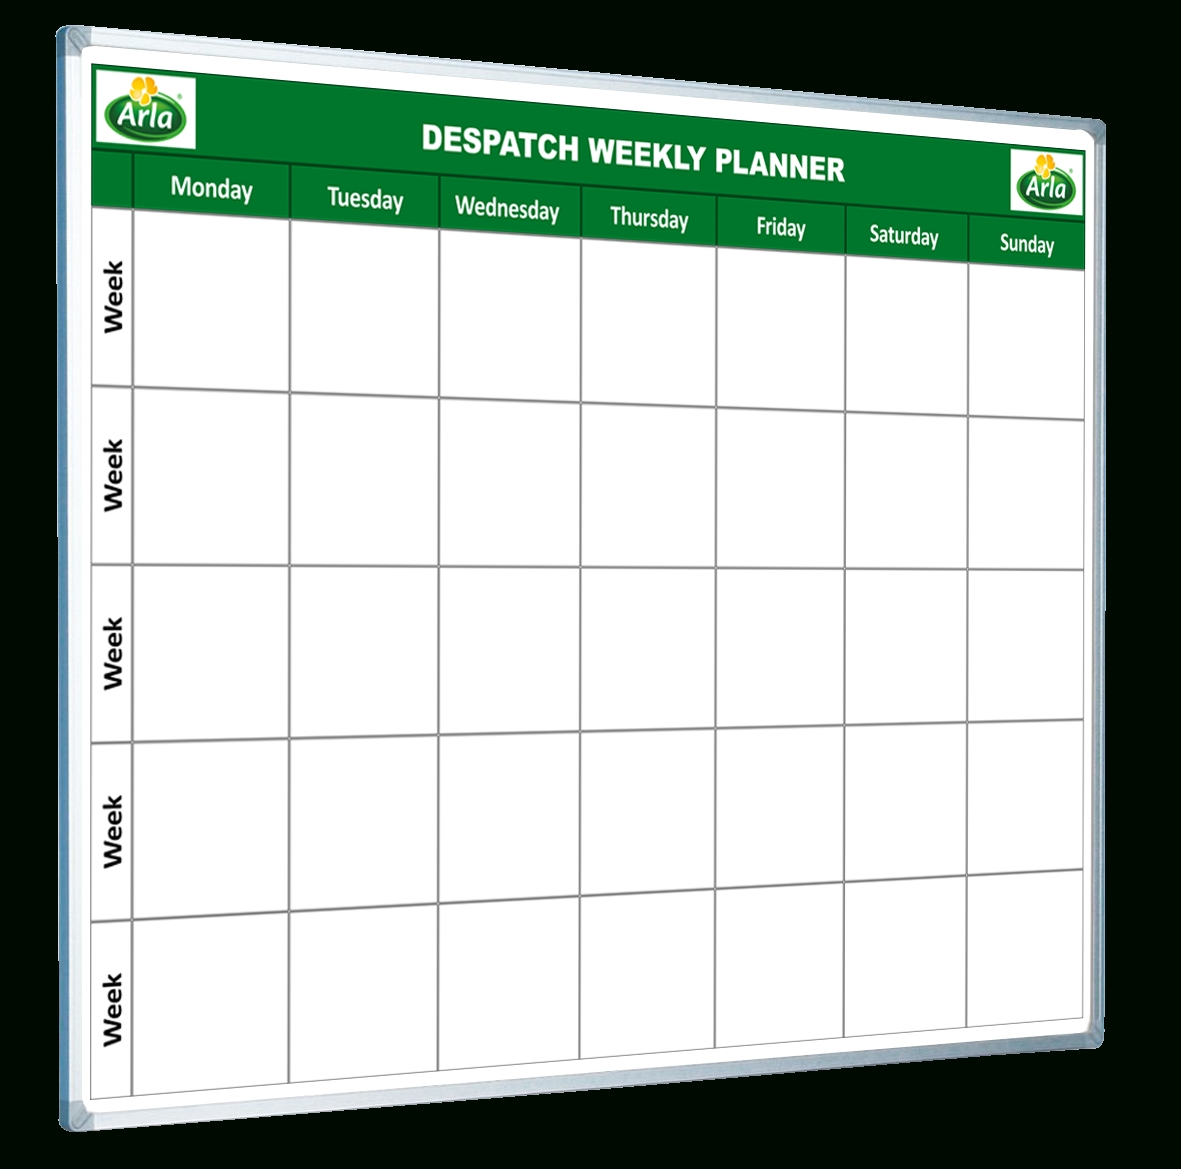 Custom Printed Planner Whiteboards - Magiboards pertaining to 3 Week Task Planner Whiteboard